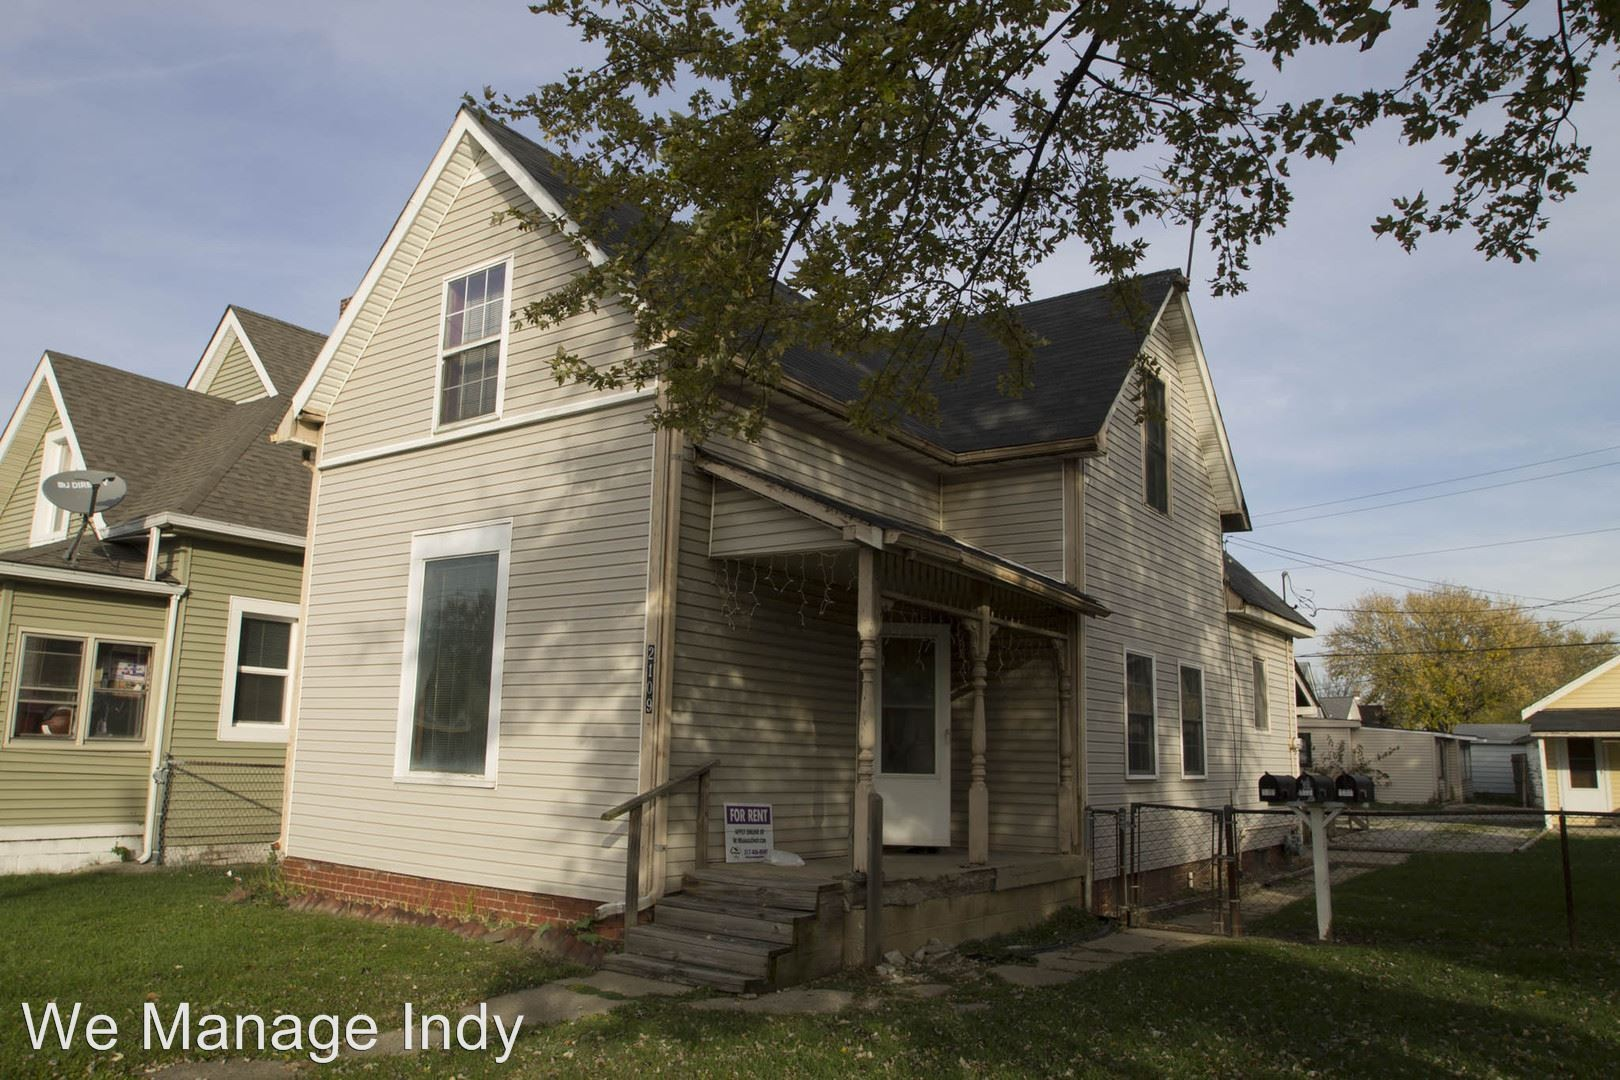 2109 S Meridian St Indianapolis In 46225 3 Bedroom House For Rent For 750 Month Zumper